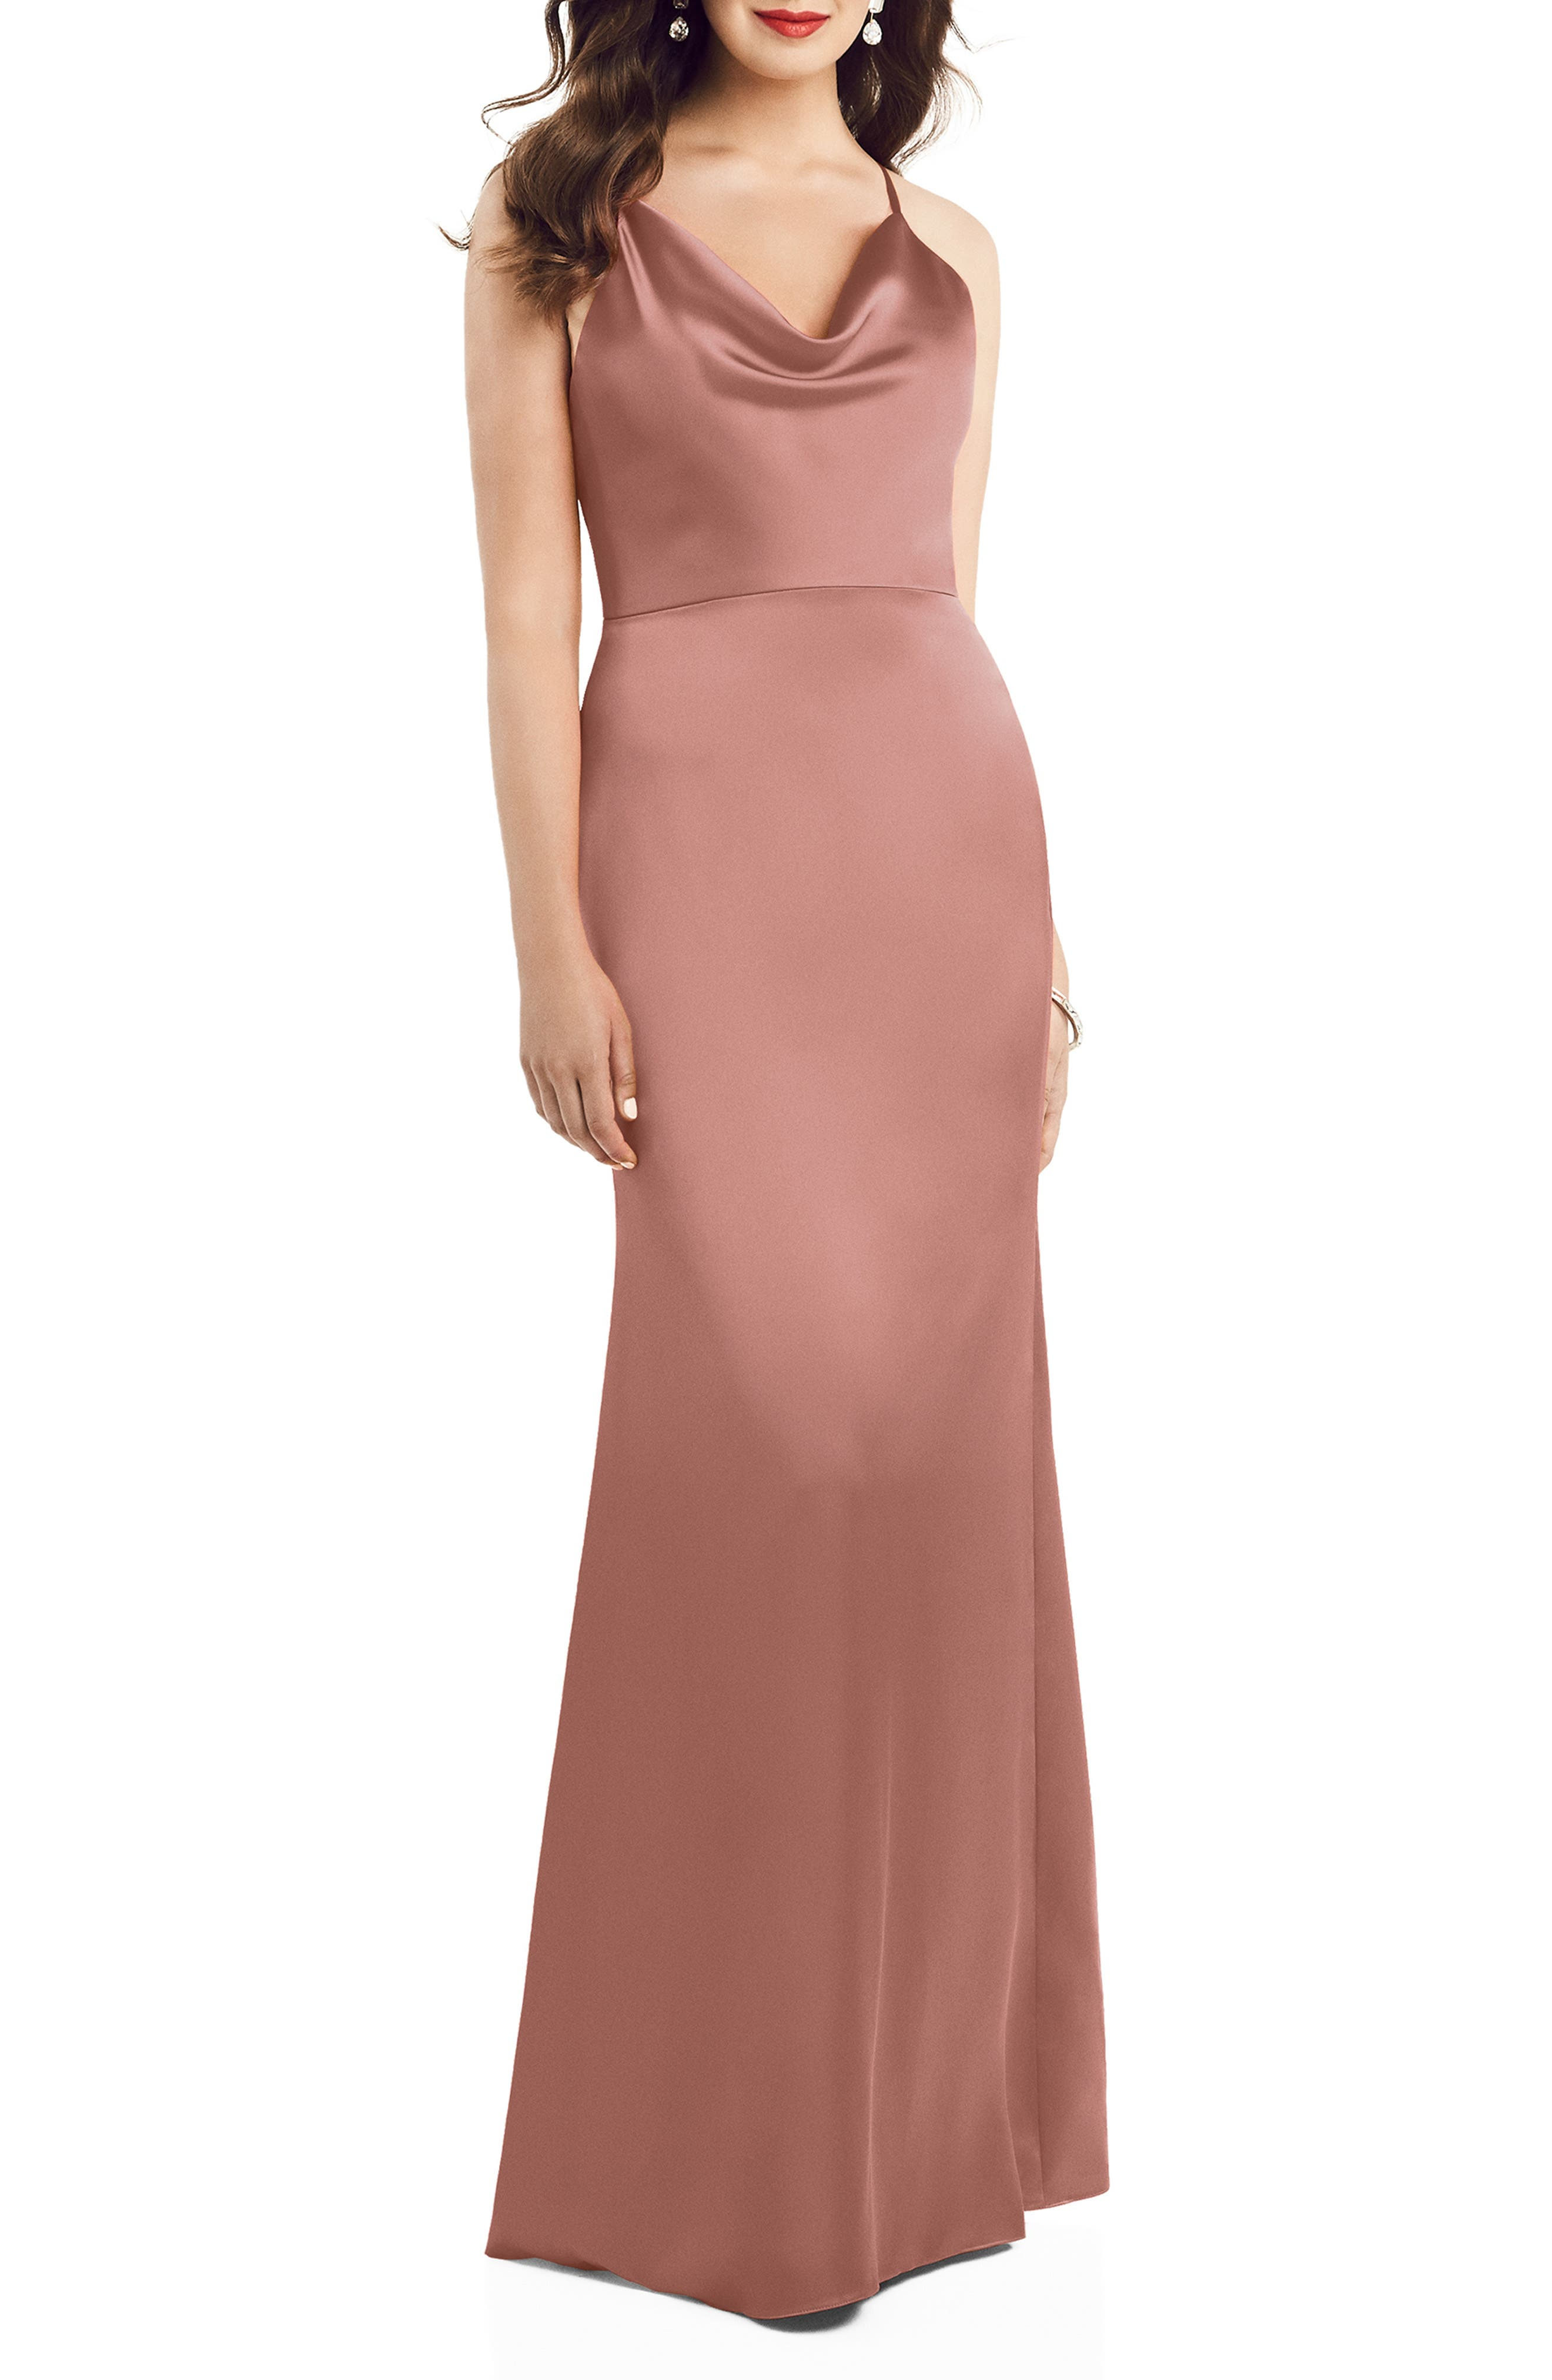 This cowl-neck gown is crafted from a luxe charmeuse that flows eloquently down the trumpet skirt and features an open back crisscrossed by spaghetti straps. Style Name: Dessy Colleciton Cowl Neck Charmeuse Trumpet Gown. Style Number: 6003840. Available in stores.